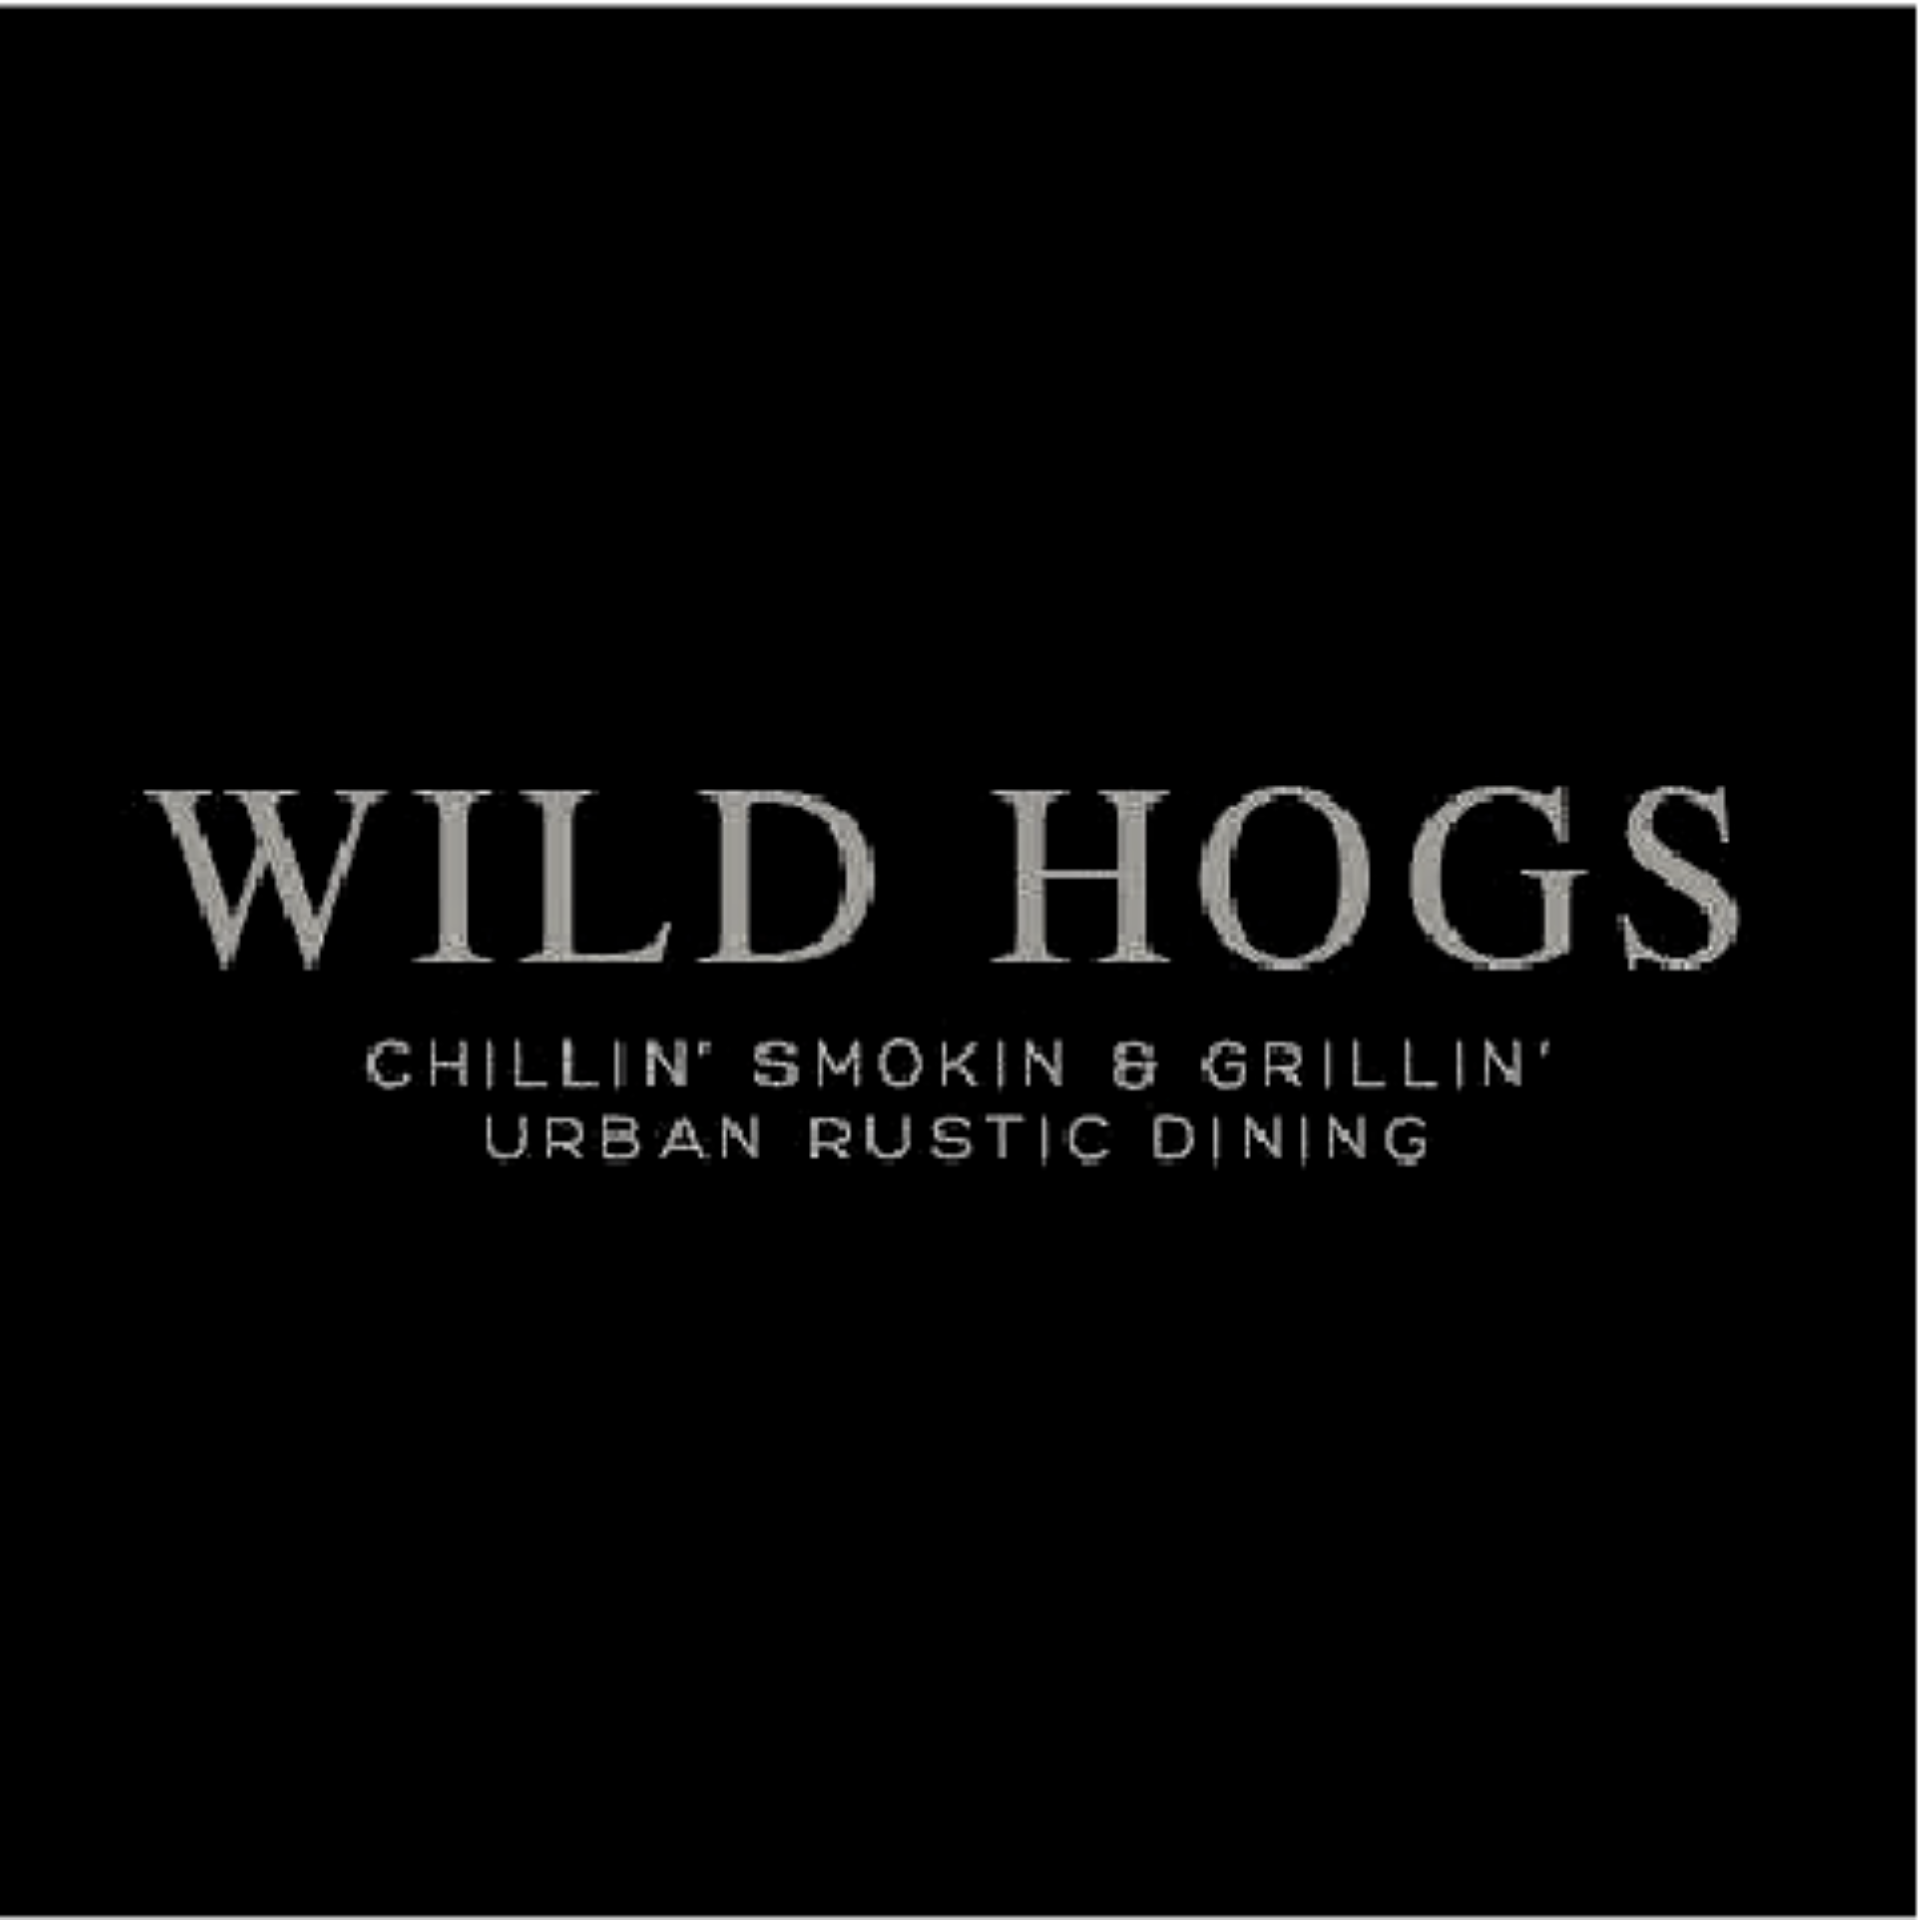 best ribs in the town. only available at wild hogs restaurant